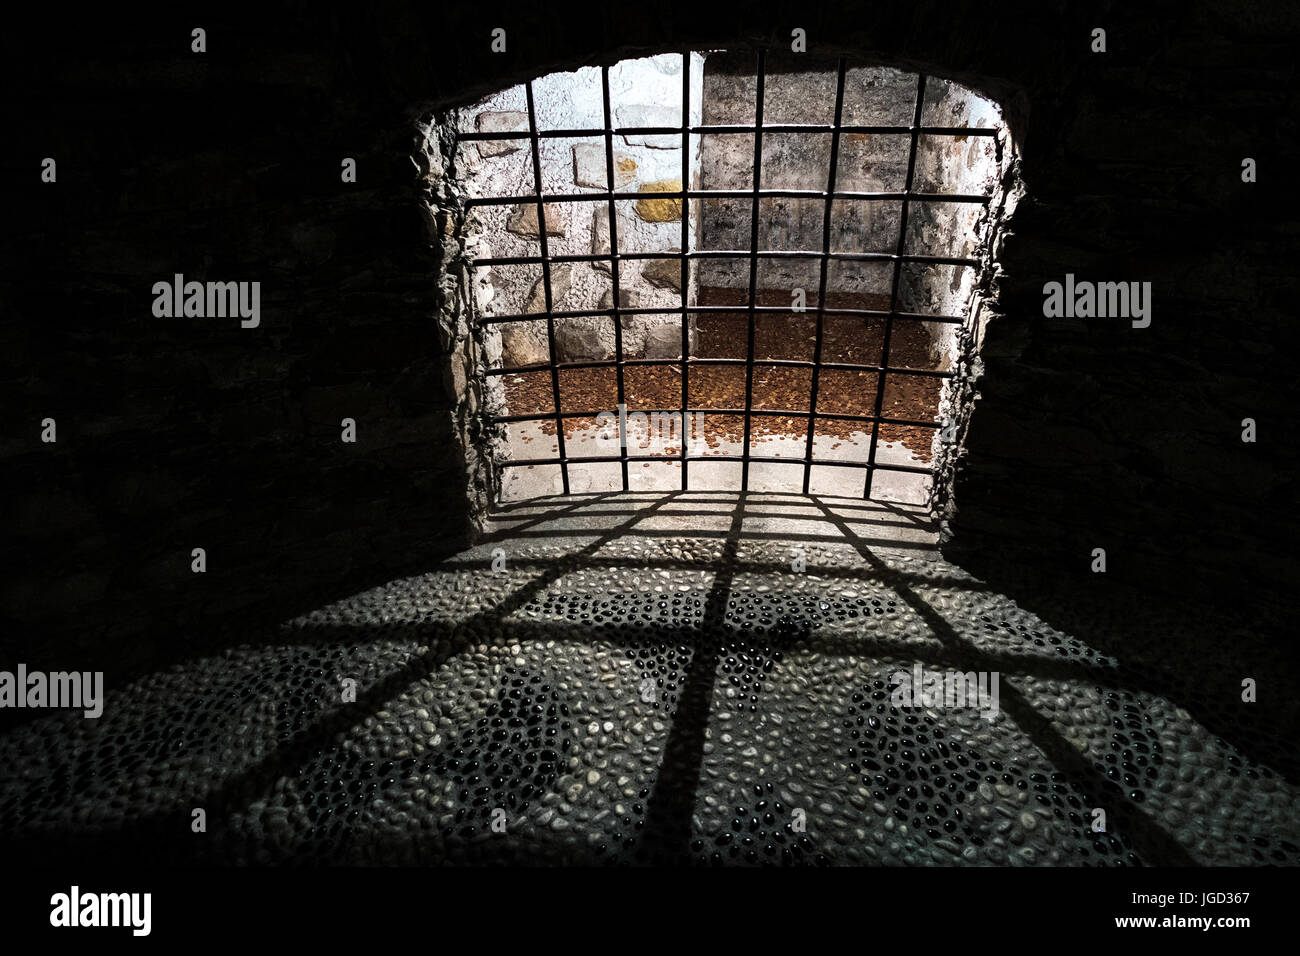 dungeon old dark prison medieval cell bars Stock Photo